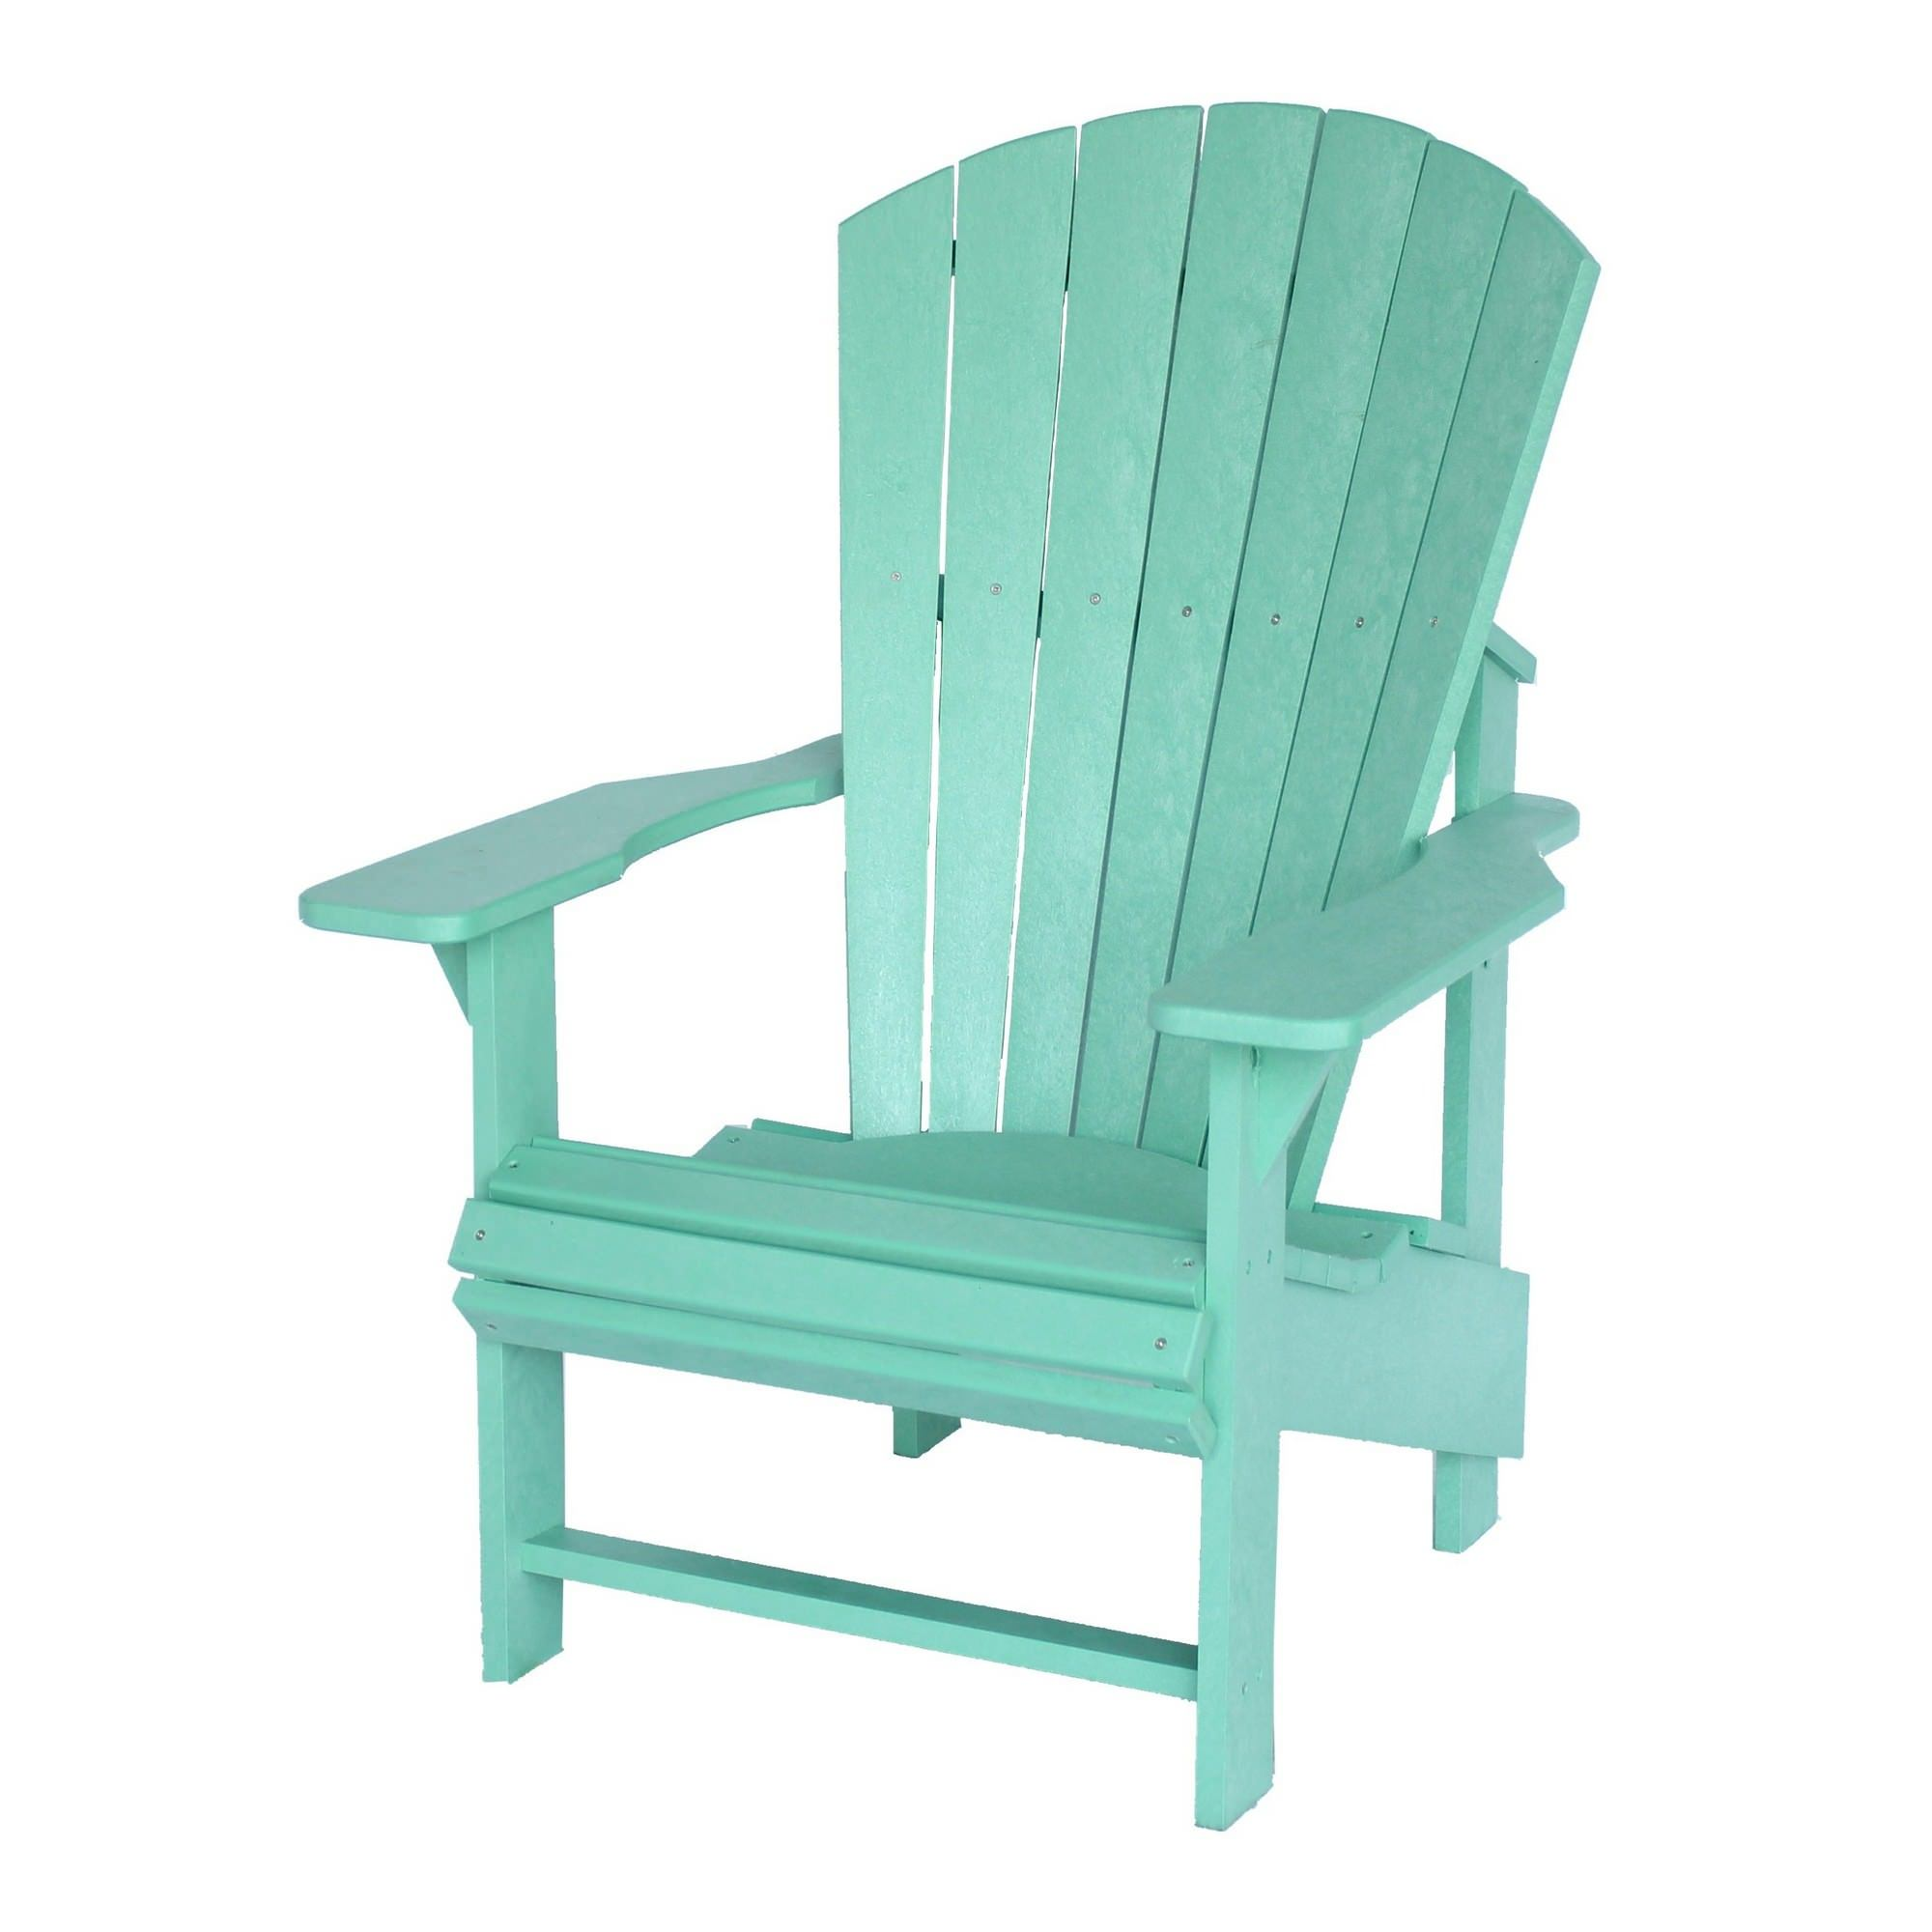 Mint Green Poly Lumber Adirondack Upright Chair